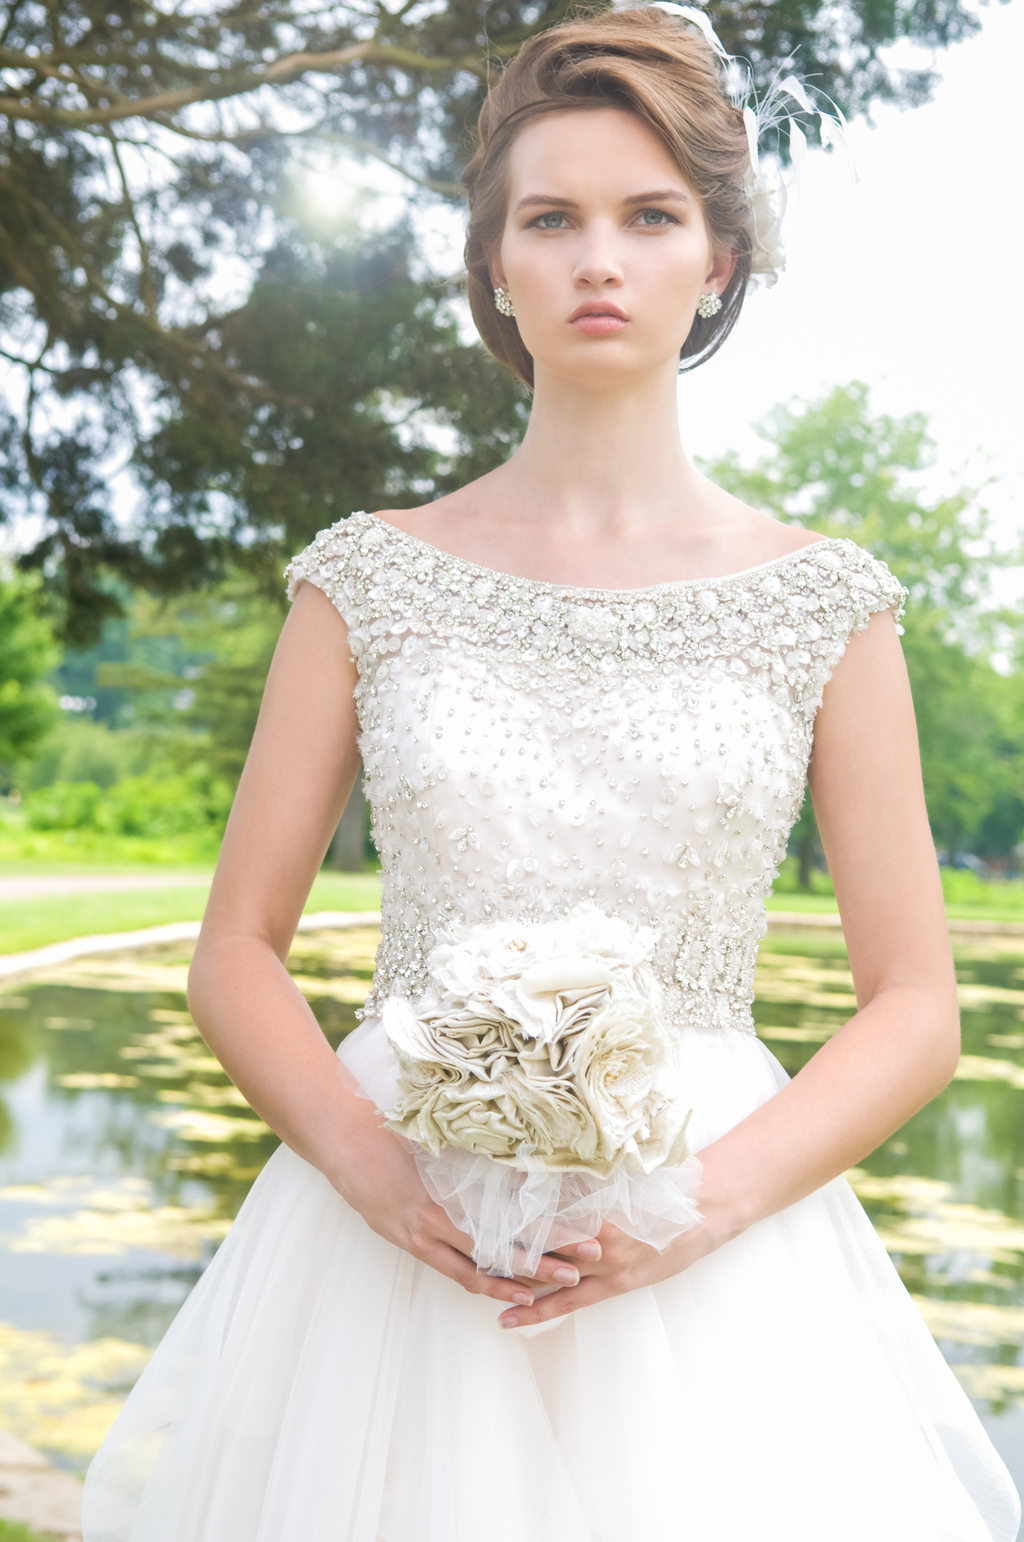 Beaded Eugenia Couture Wedding Dress